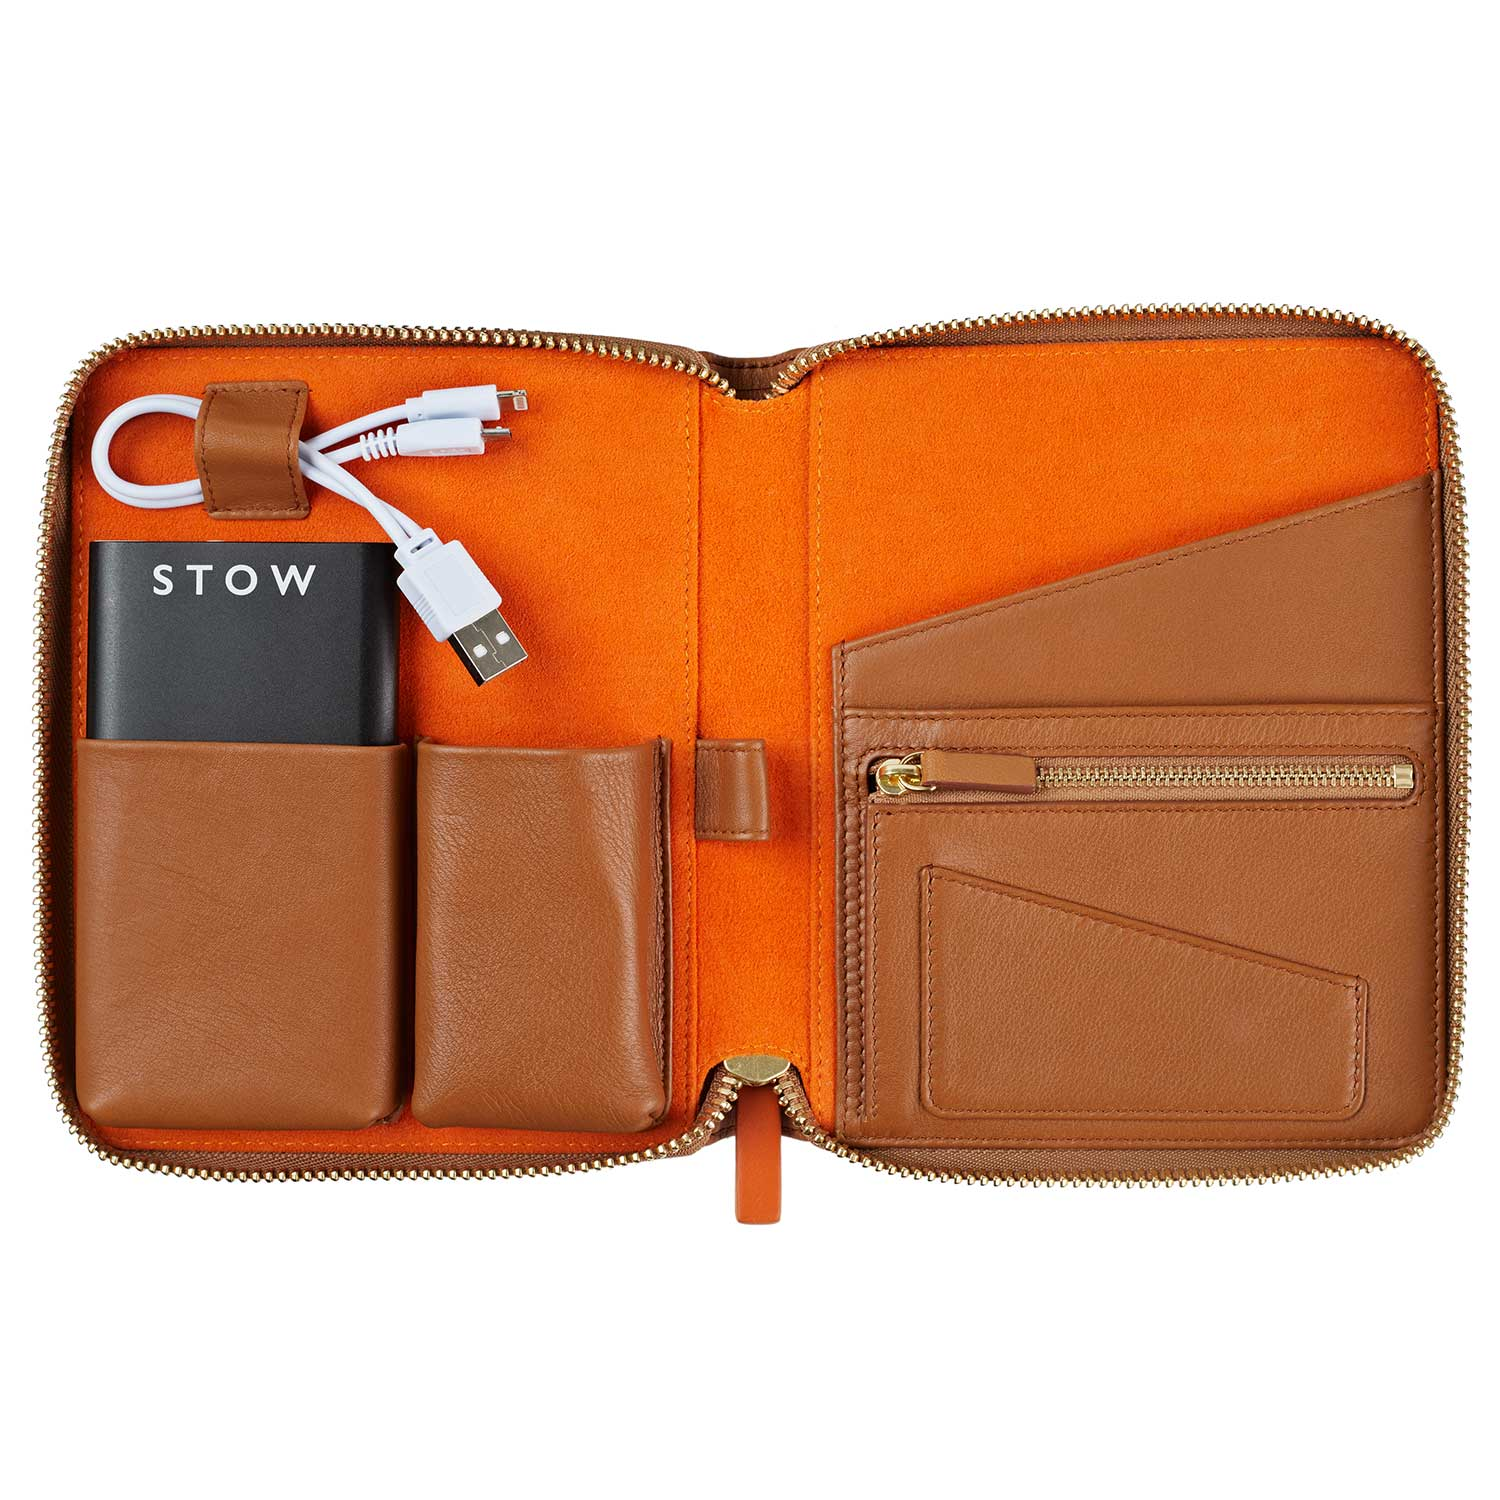 Mini Reiseorganizer Leder Cognac/Orange - Gustavia Shop